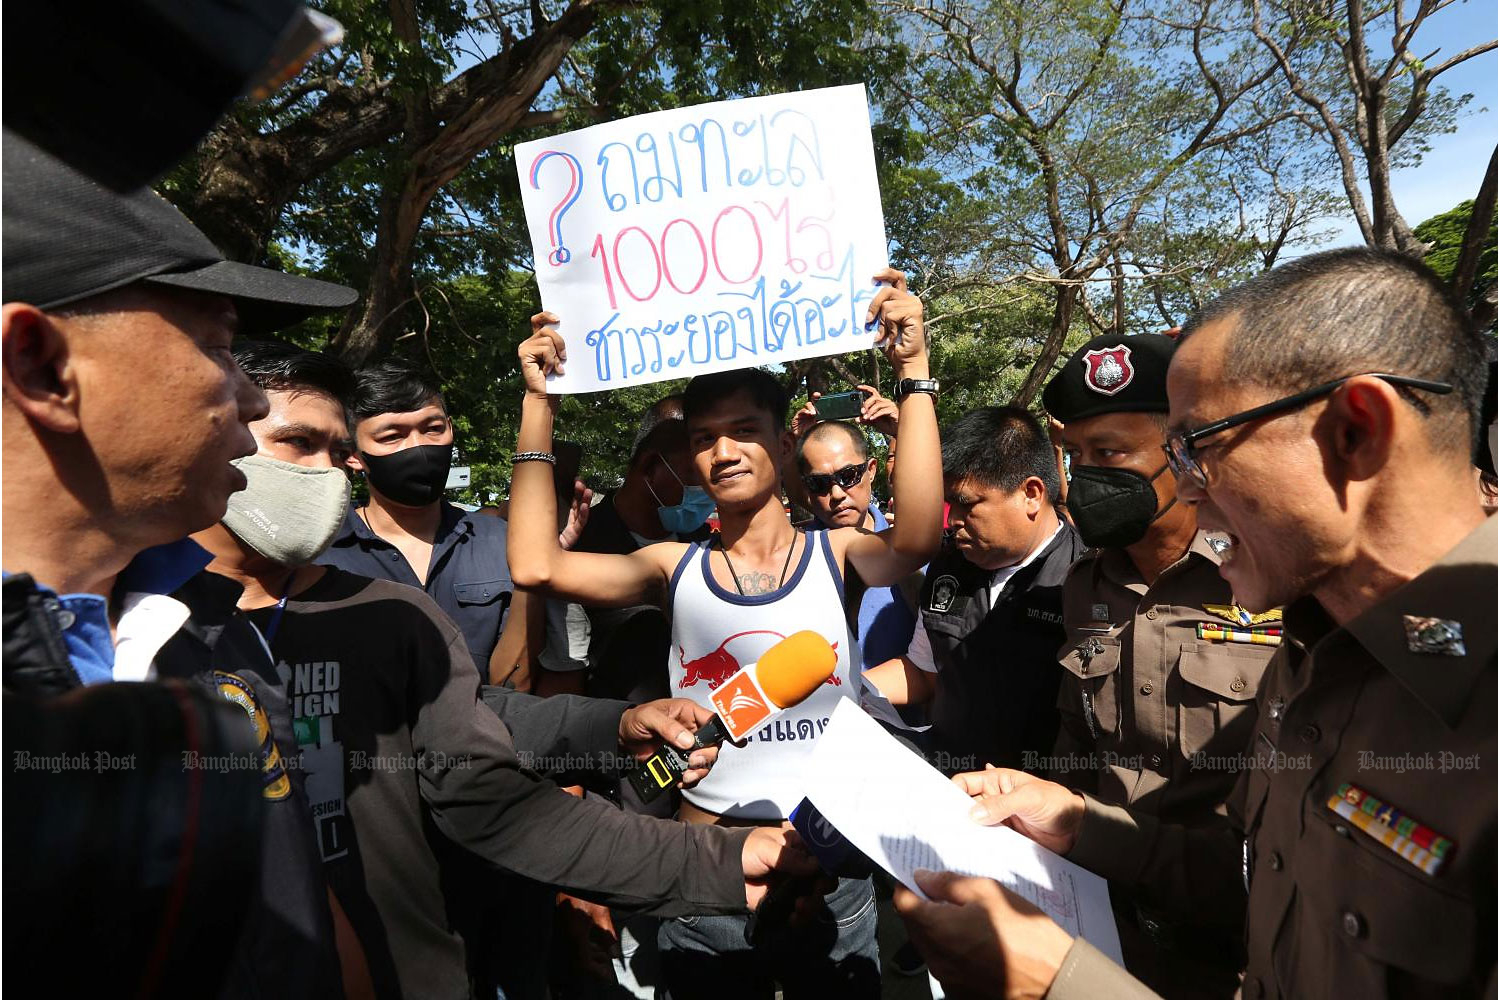 In this Aug 24 photo, activist Panupong 'Mike' Jadnok holds up a placard as he rallies against a huge sea reclamation project in Rayong shortly before Prime Minister Prayut Chan-o-cha's arrival in the province.(Photo by Pattarapong Chatpattarasill)